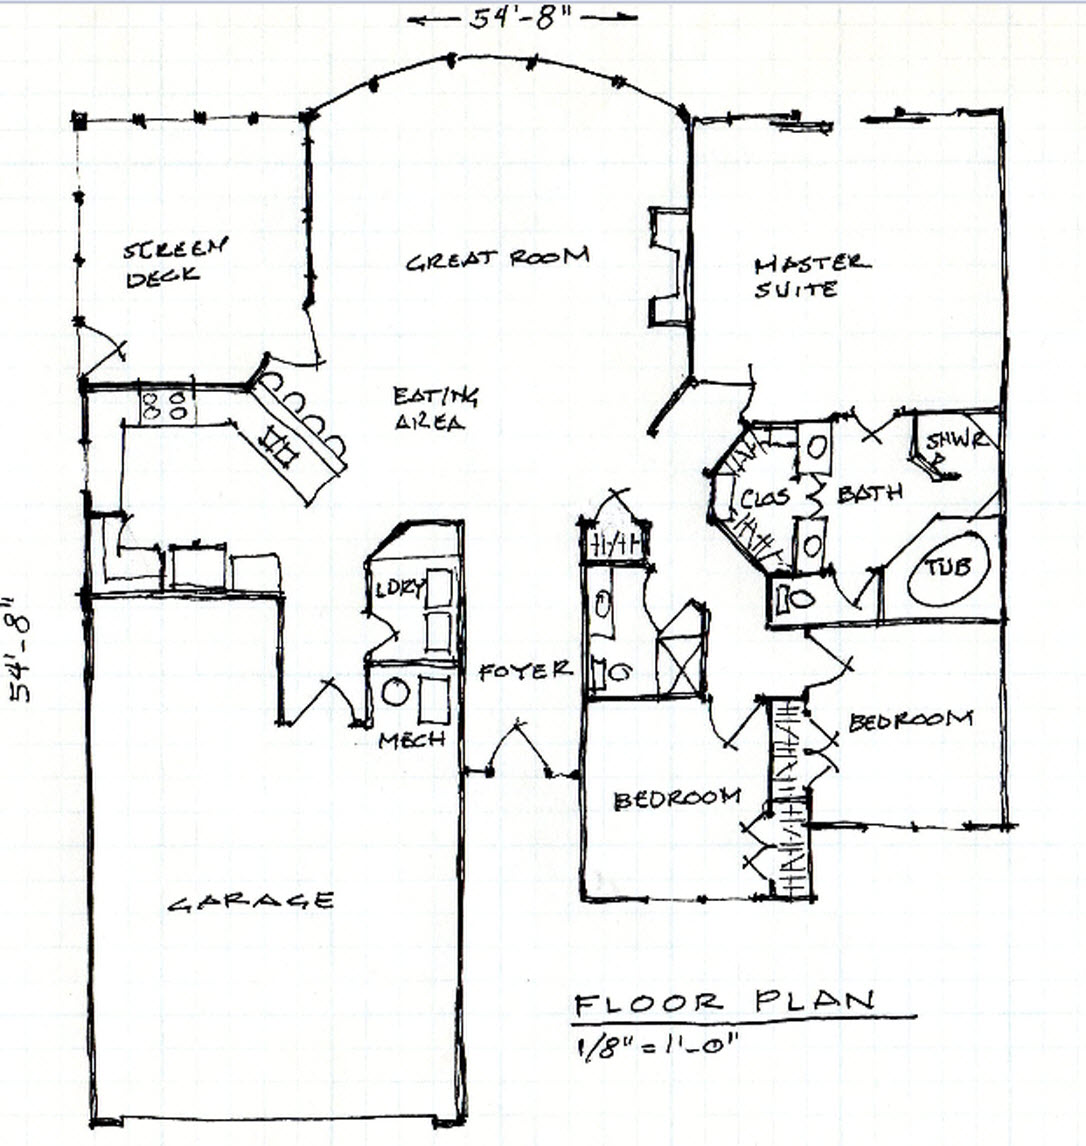 Patio home floor plans 3 bedroom patio home plans lake for Patio home designs